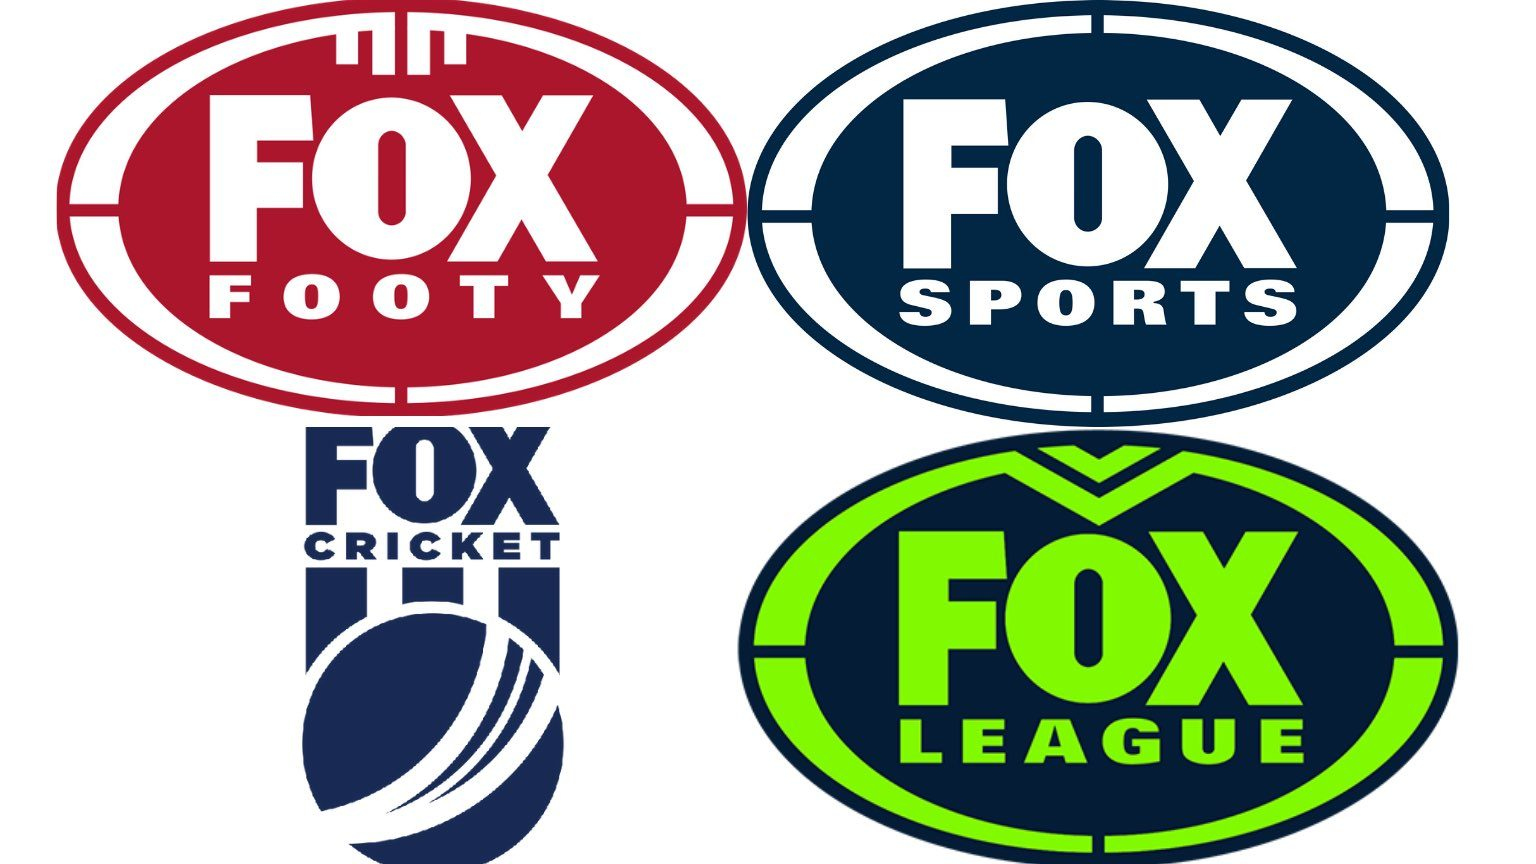 Fox Sports without Foxtel